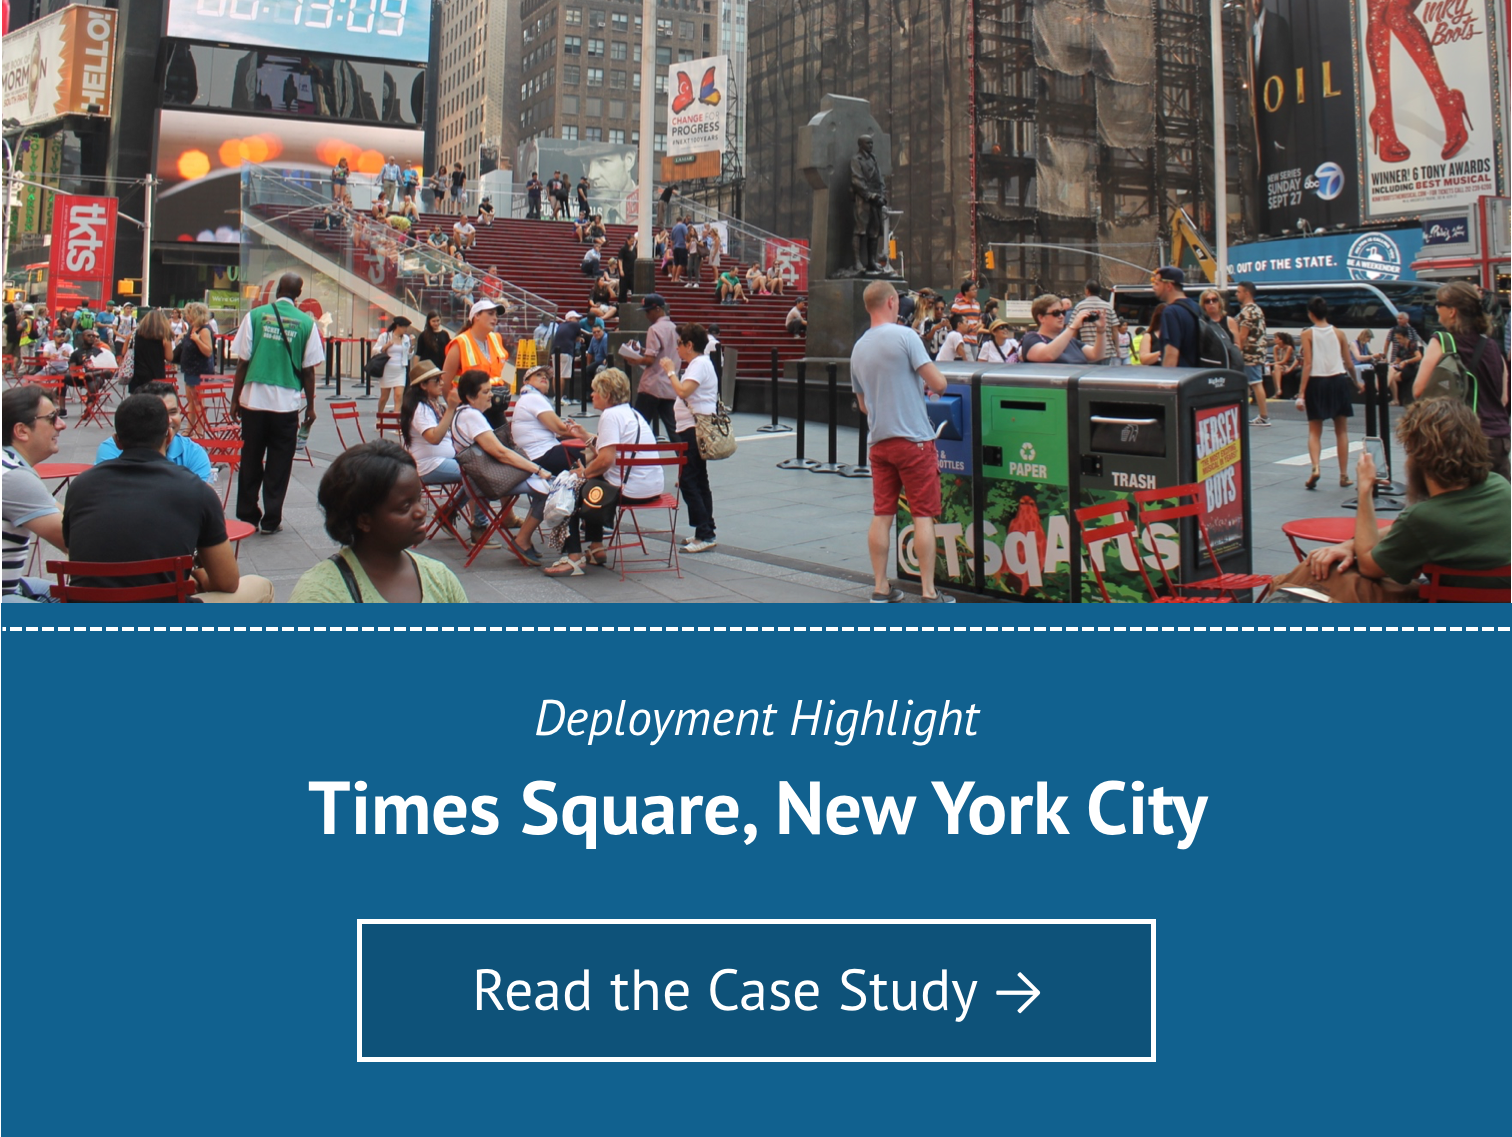 Deployment Highlight for Times Square New York City - Read the Case Study